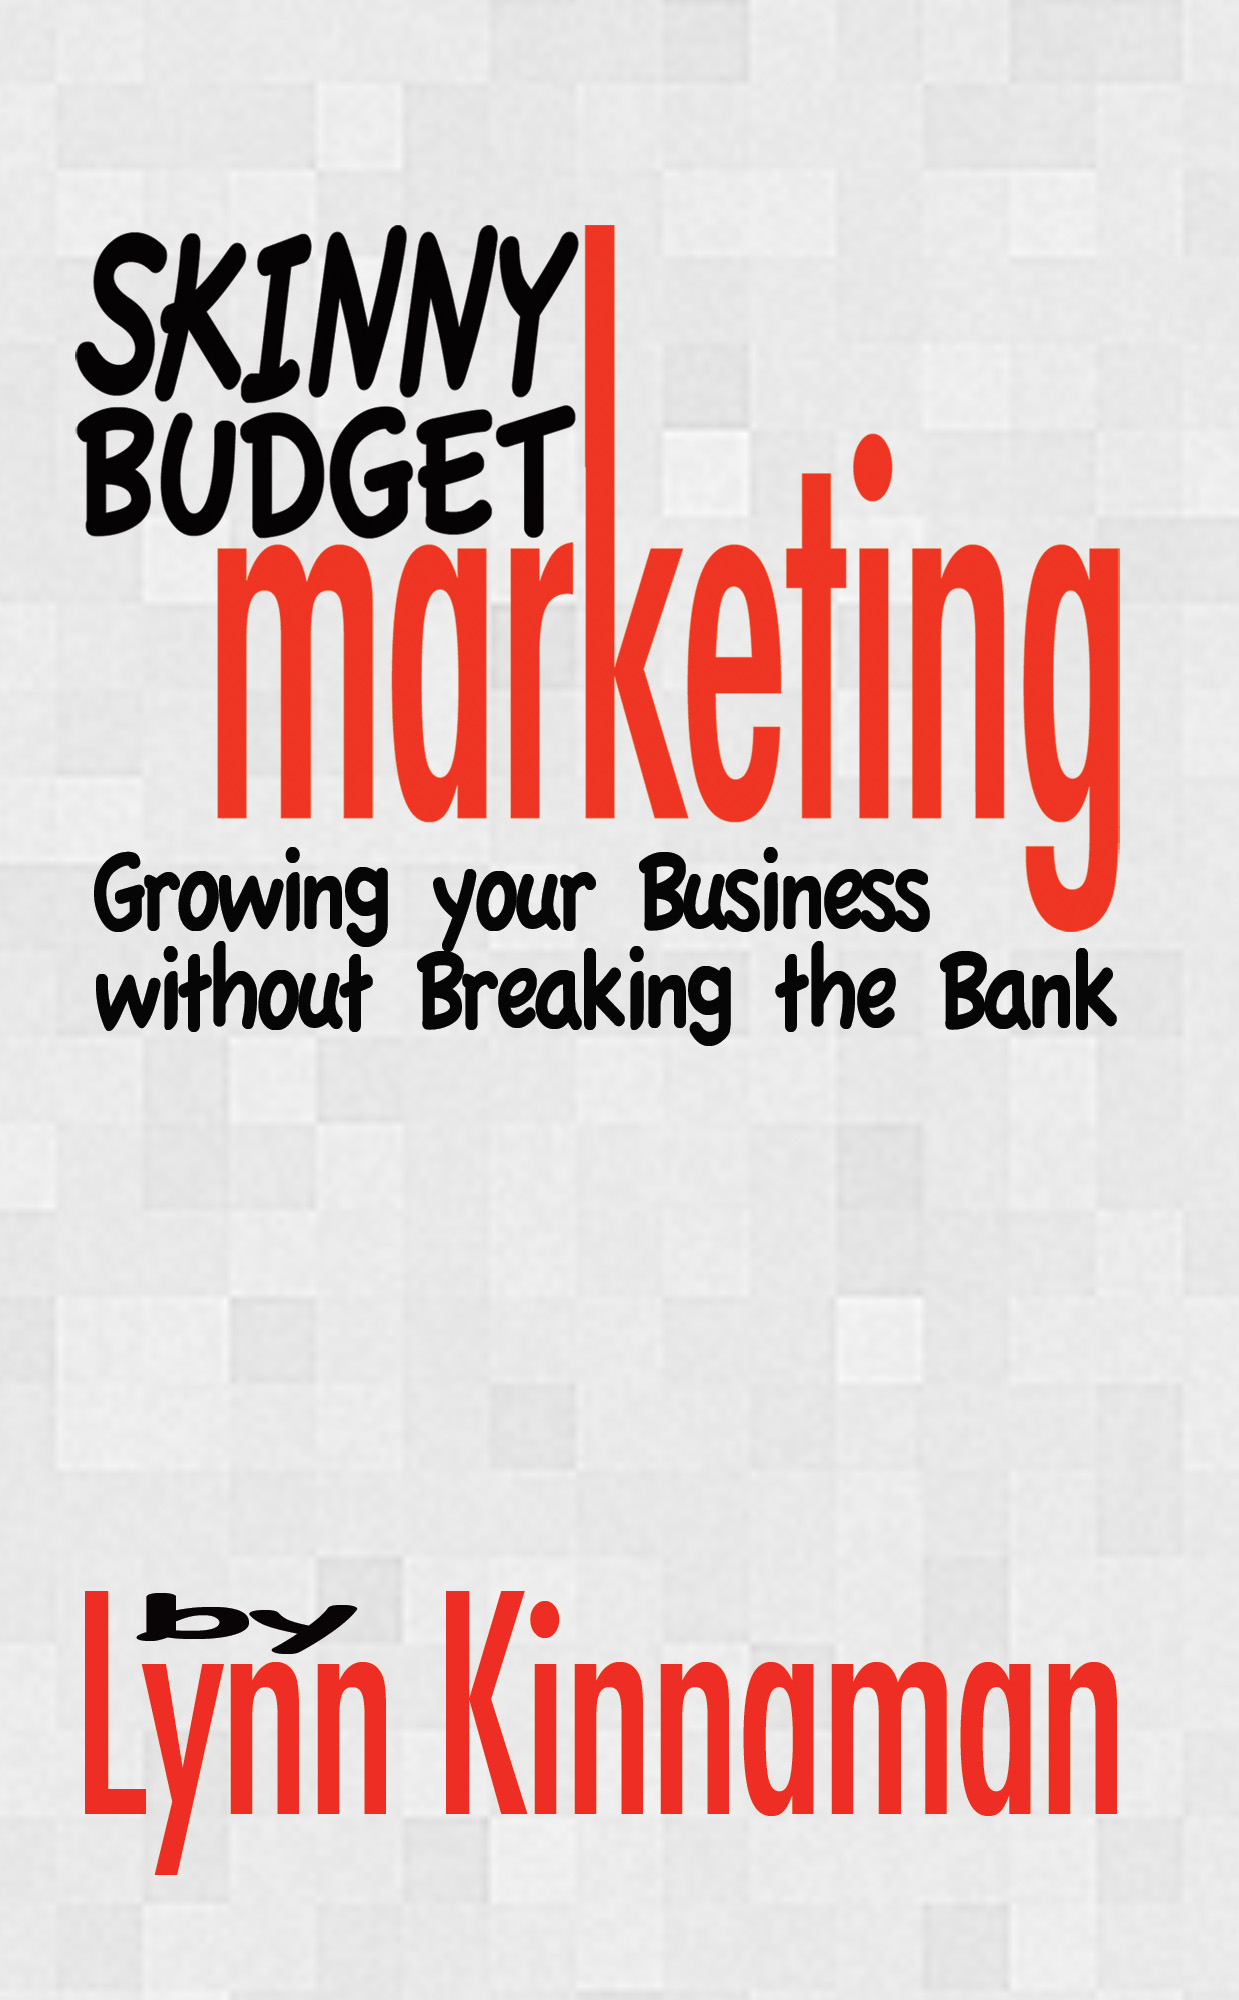 Skinny Budget Marketing